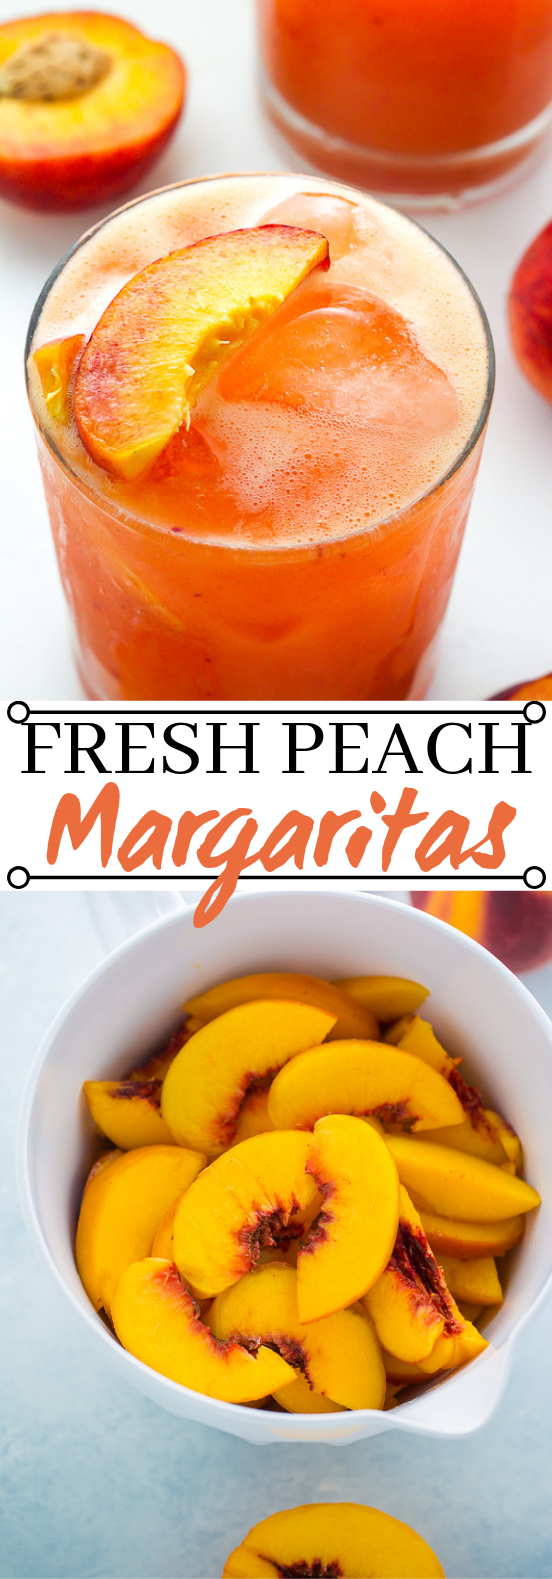 Fresh Peach Margaritas #summer #drinks